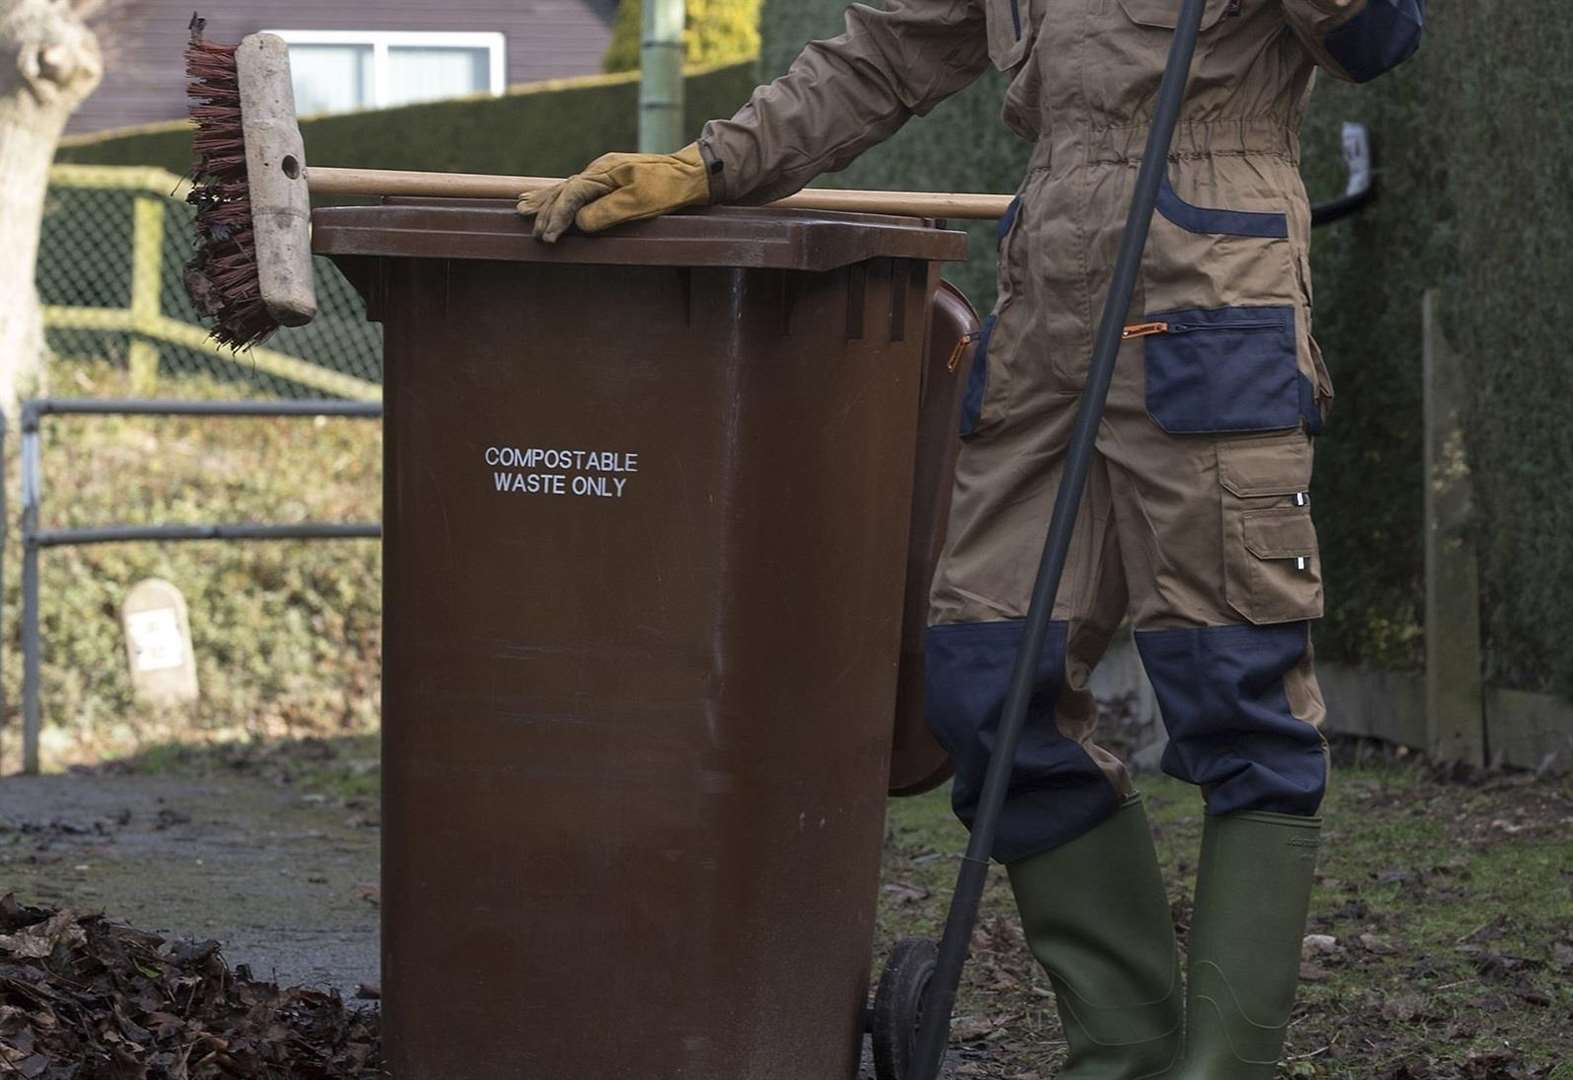 Charge for brown bins set to rise in West Suffolk